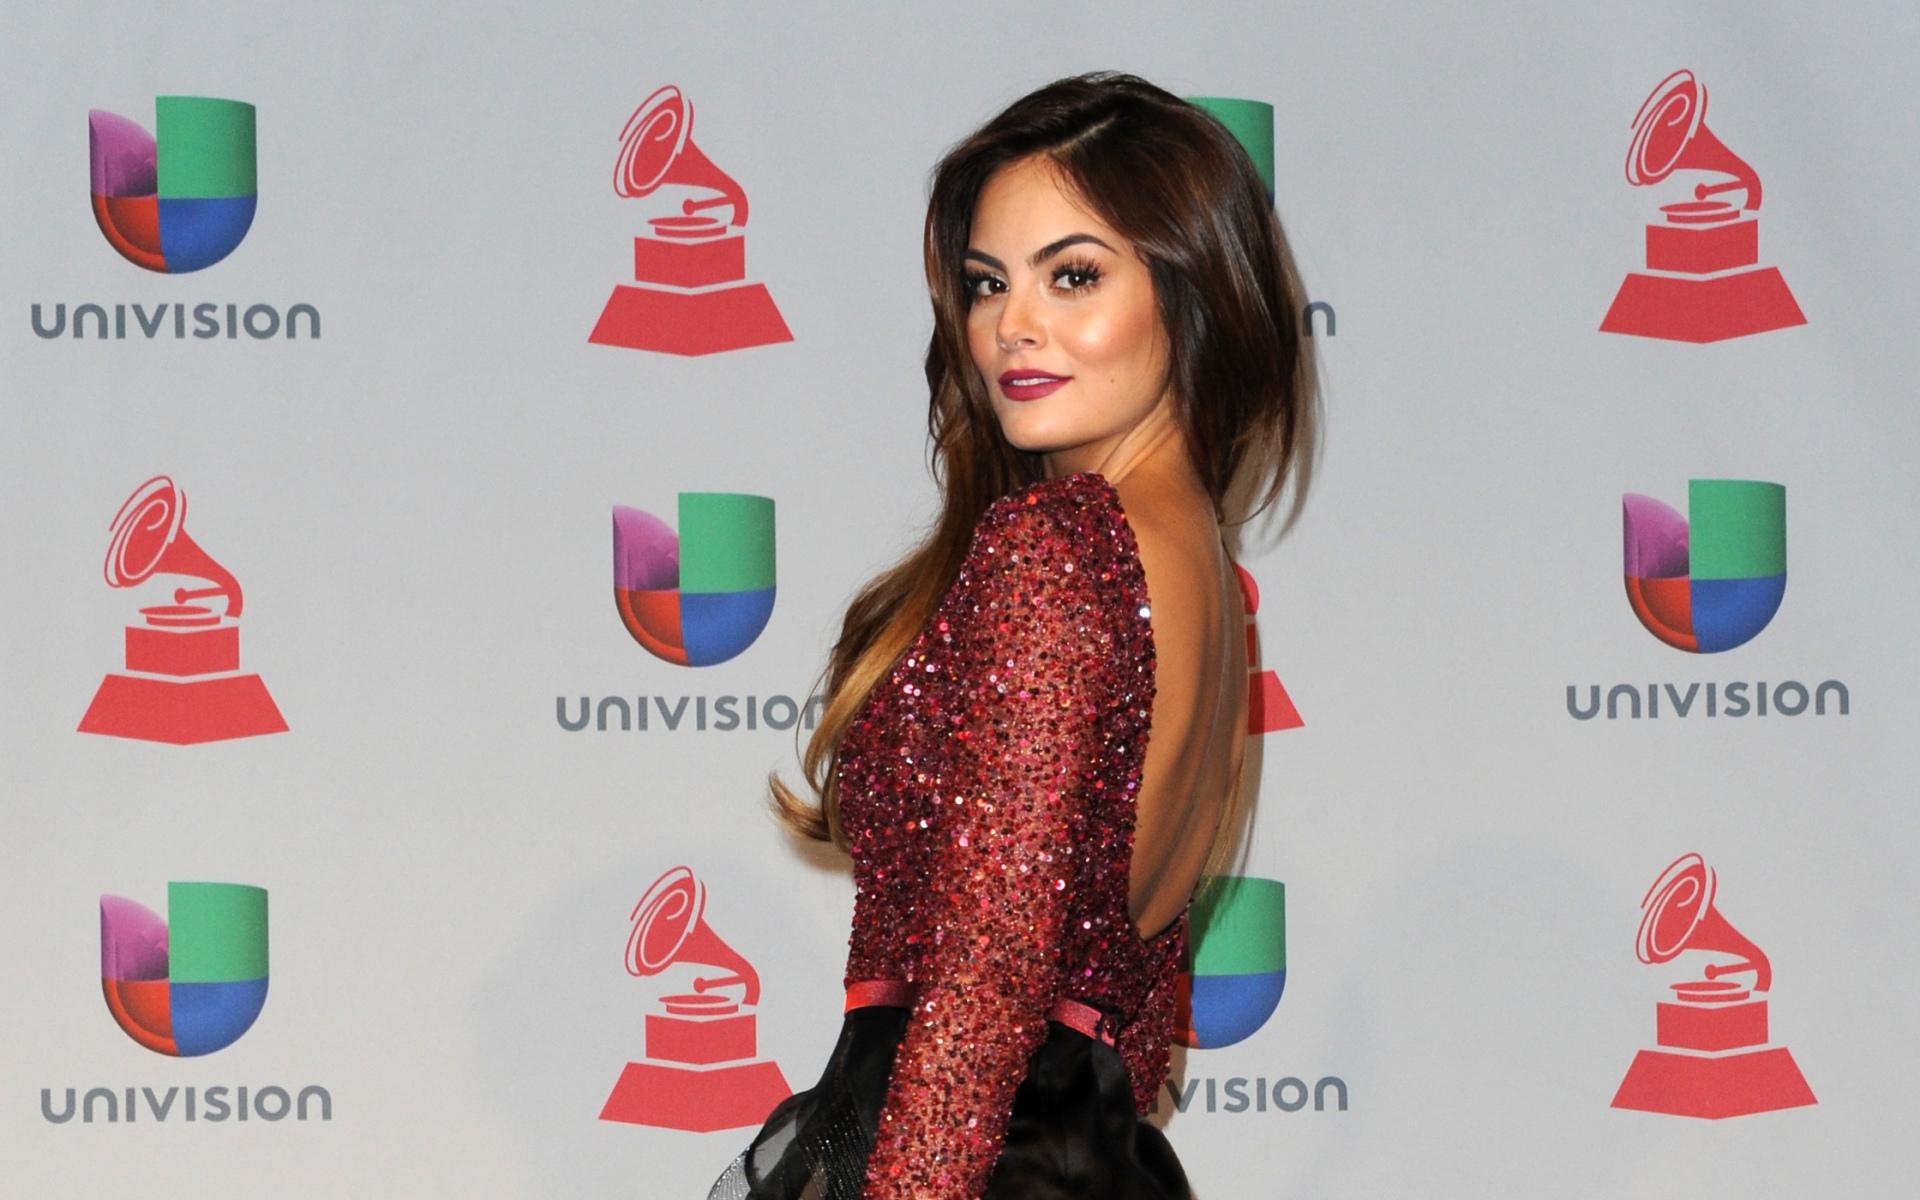 Ximena Navarrete at 1334 x 750 iPhone 7 size wallpapers HD quality